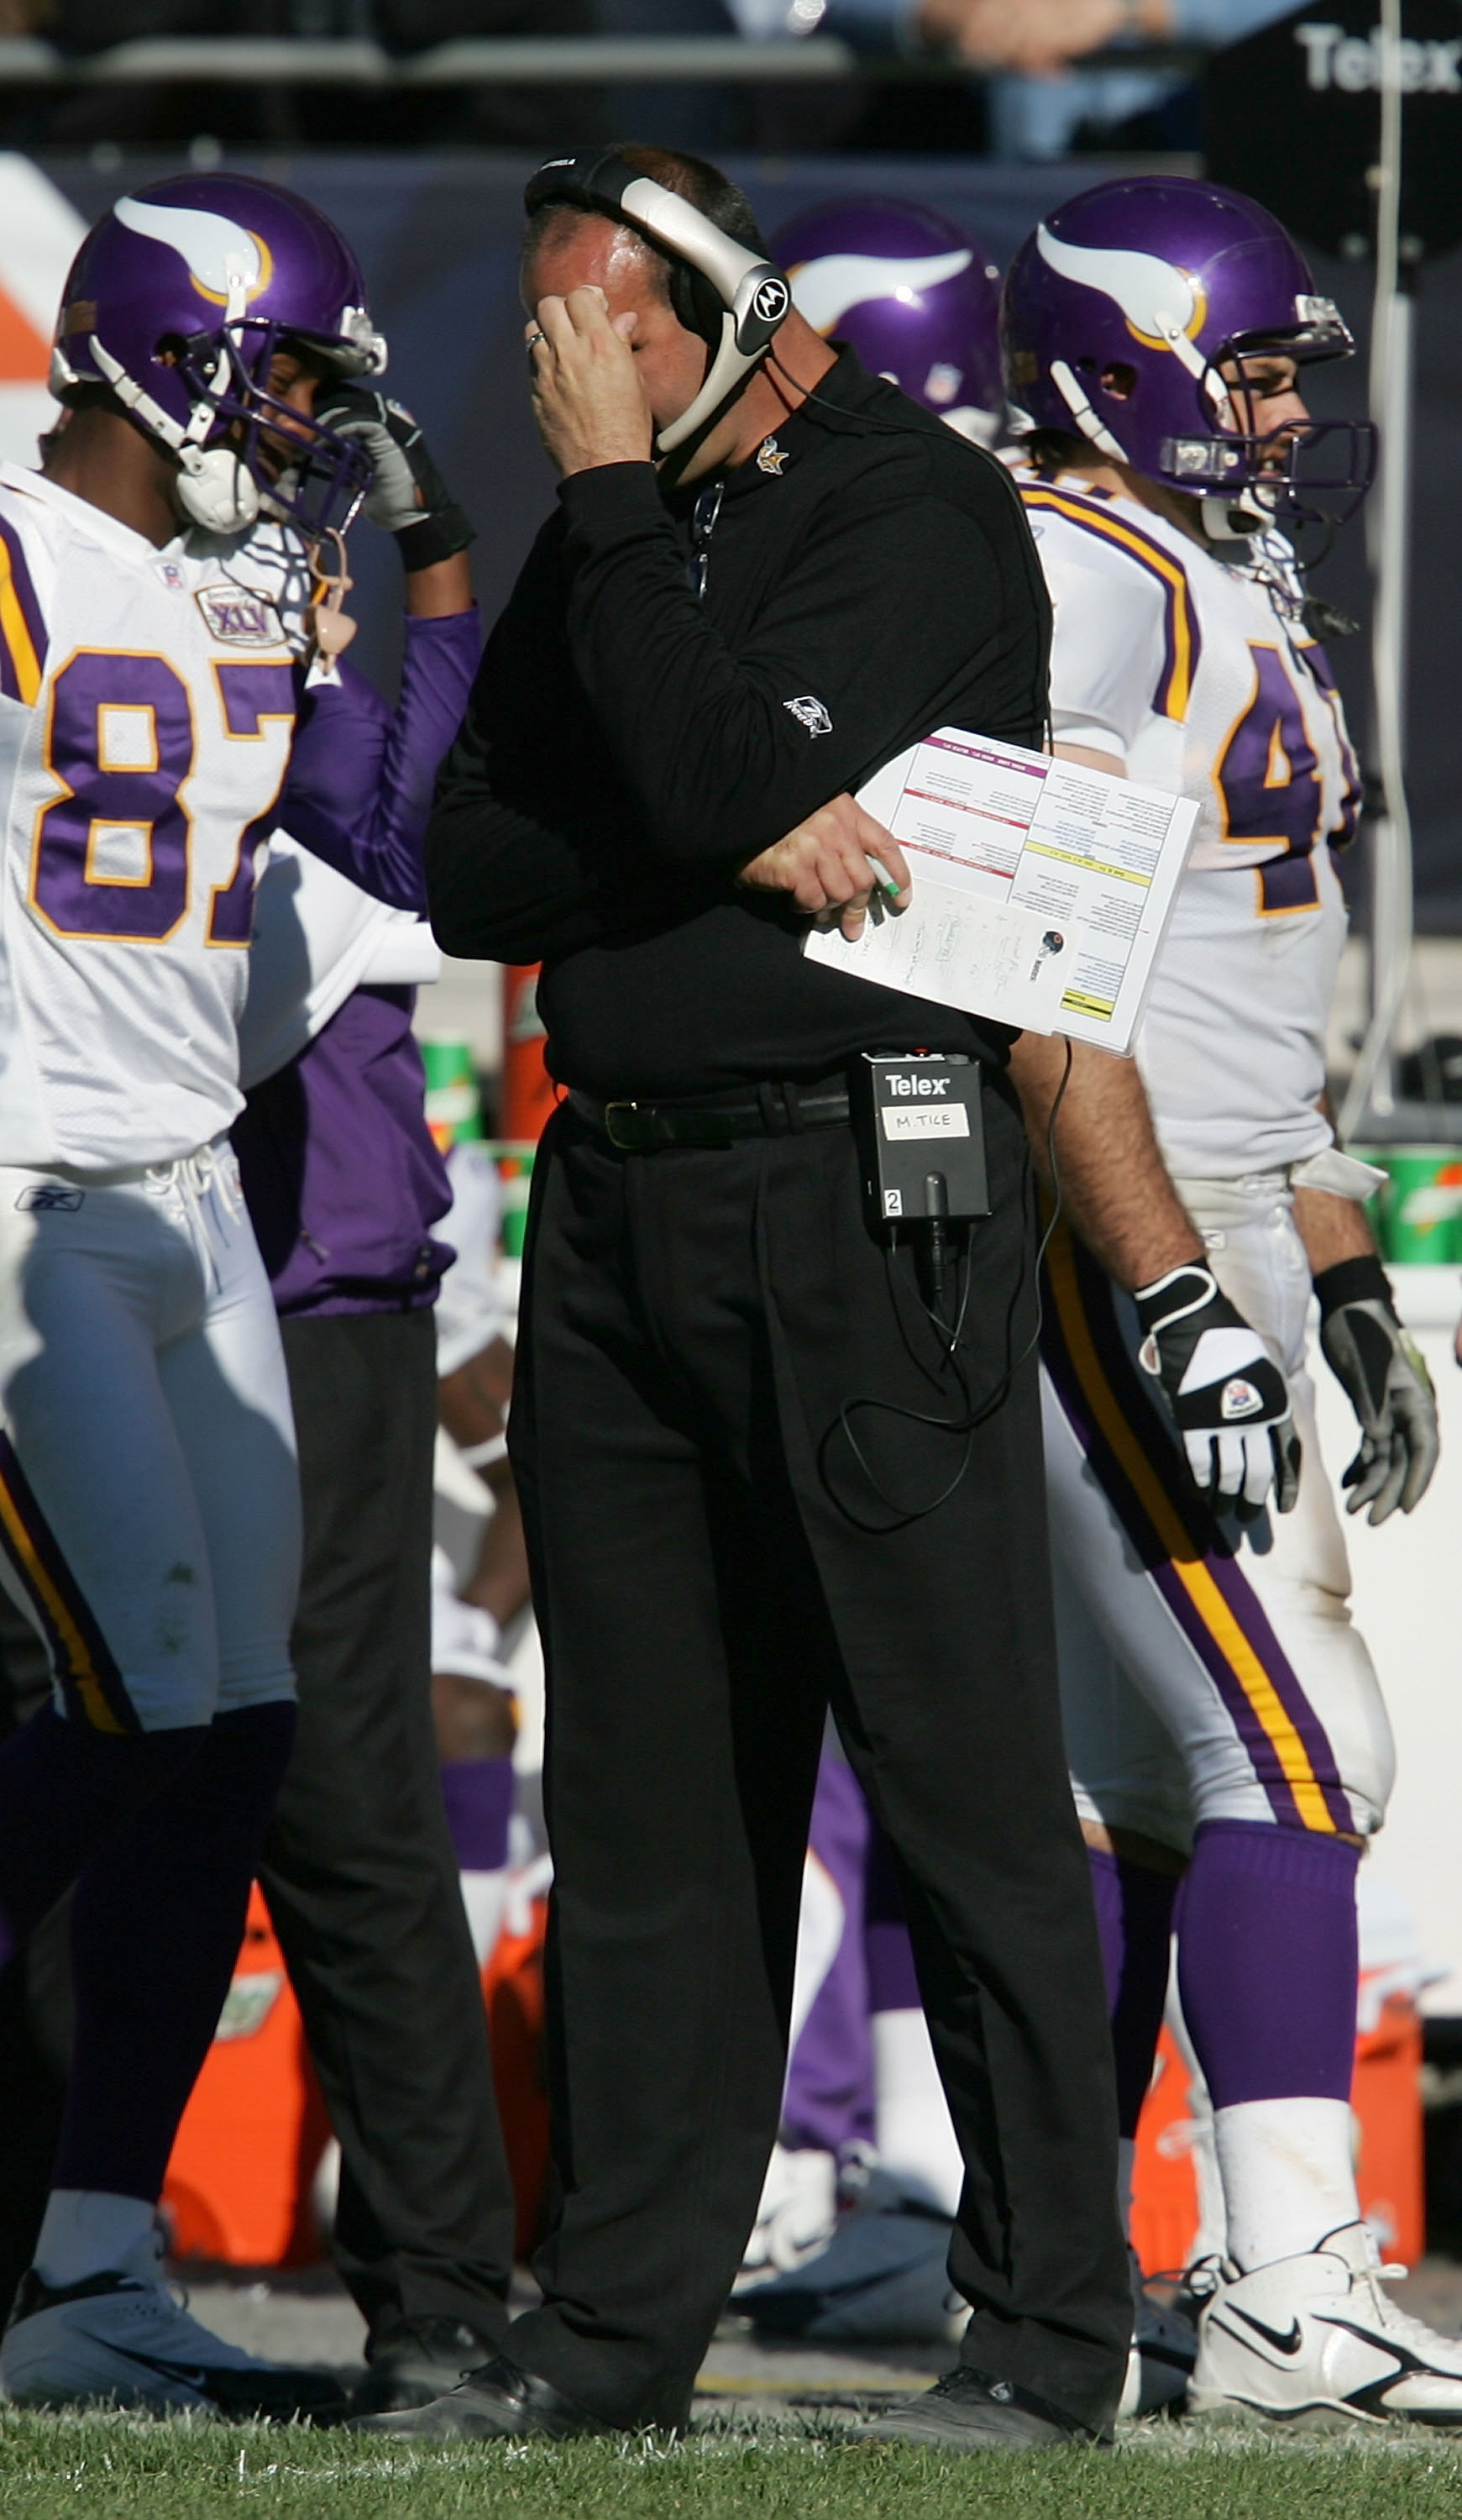 CHICAGO - OCTOBER 16:  Head Coach Mike Tice of the Minnesota Vikings watches his team in the fourth quarter against the Chicago Bears on October 16, 2005 at Soldier Field in Chicago, Illinois. The Bears defeated the Vikings 28-3.  (Photo by Jonathan Danie